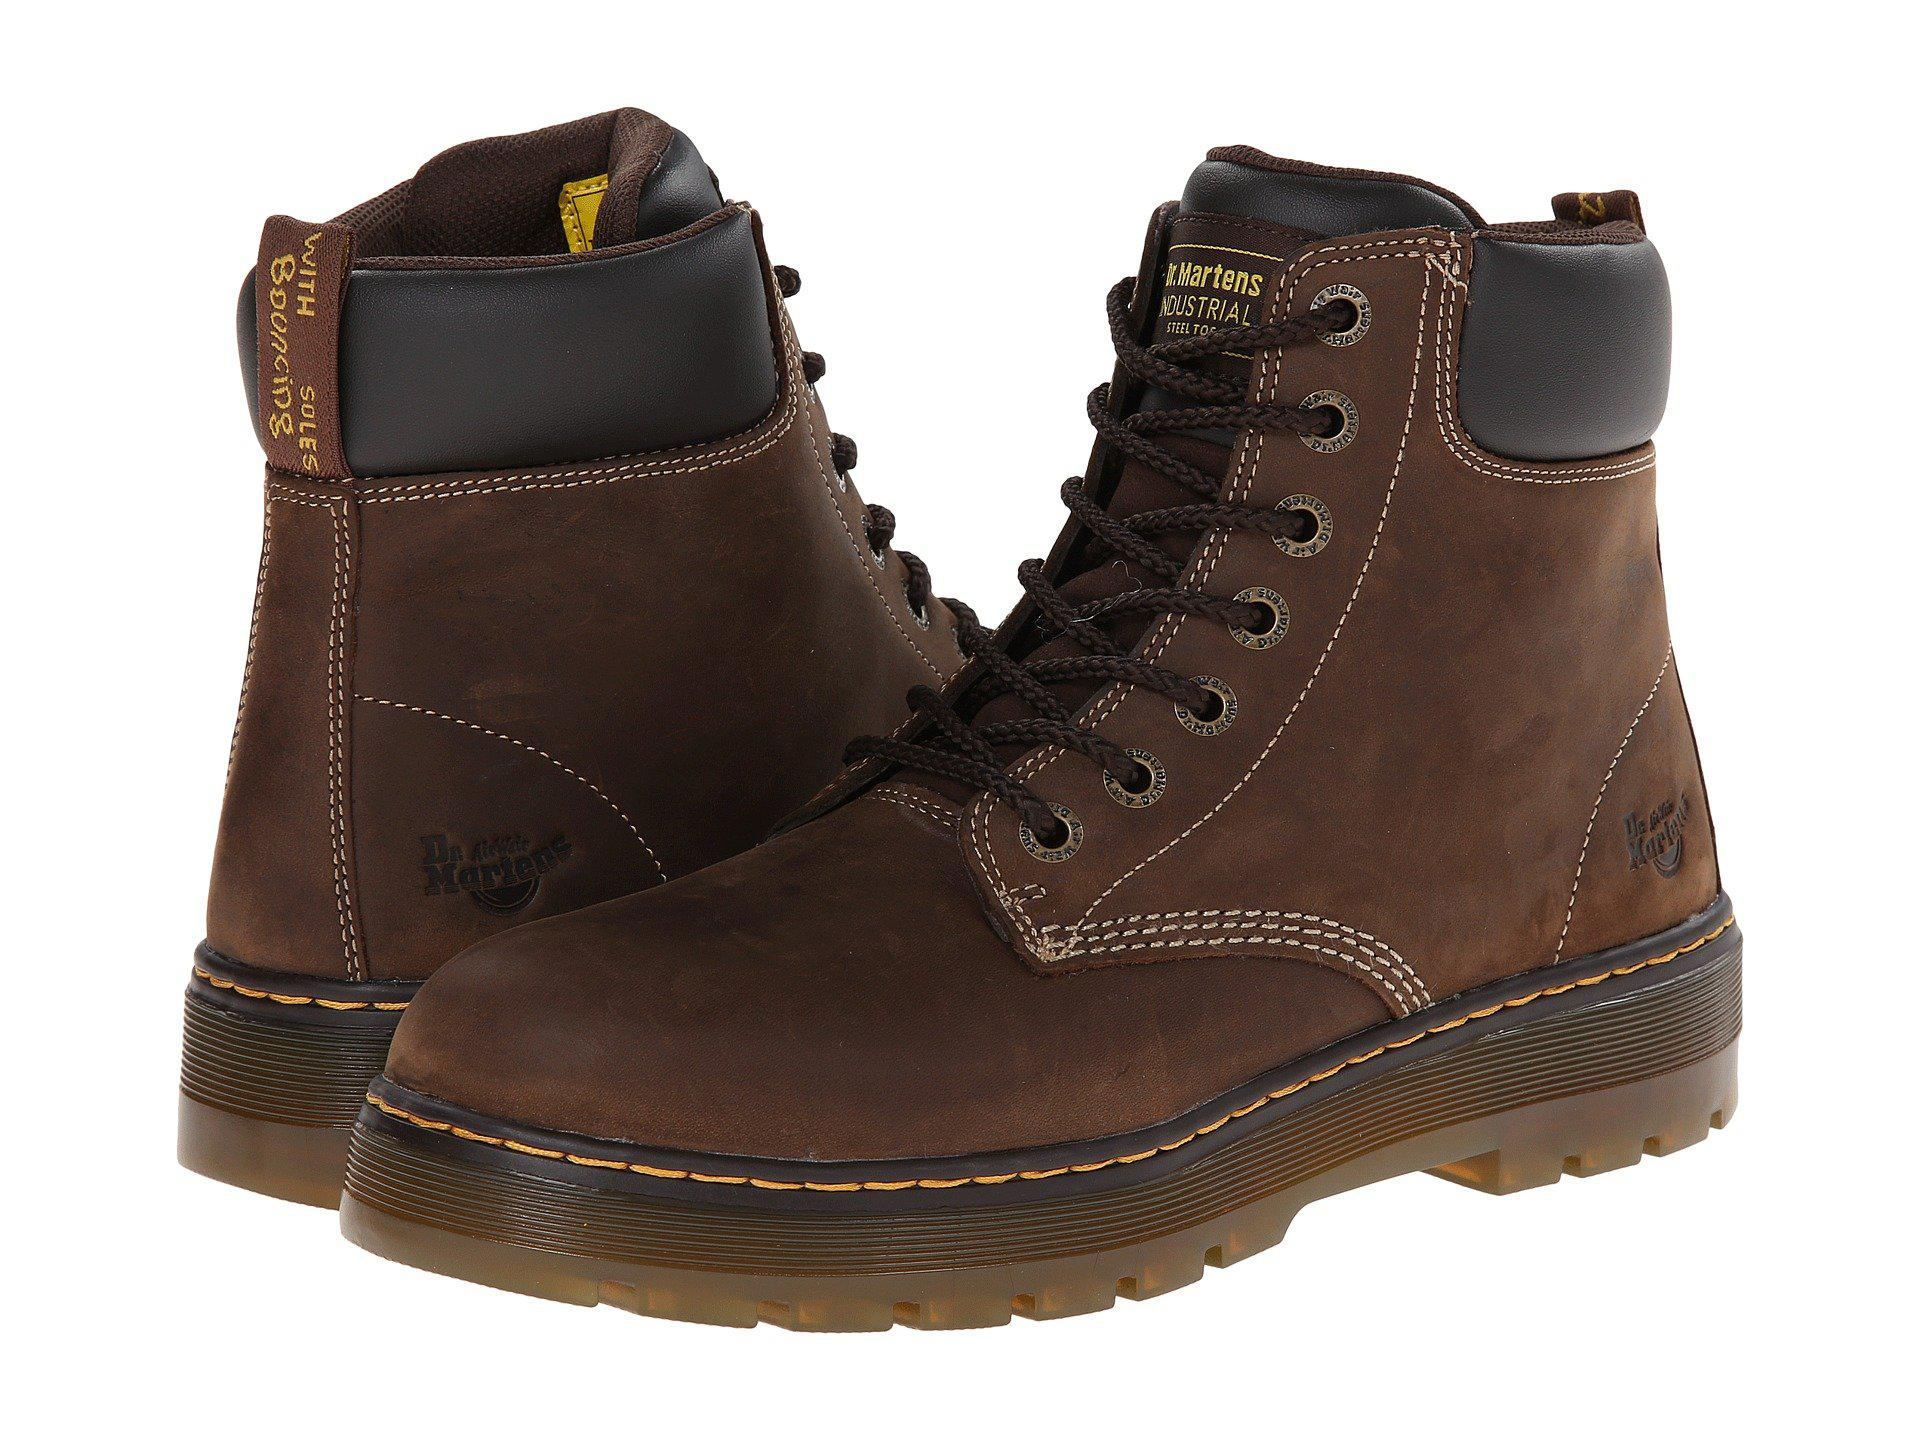 914e558bbc2 Lyst - Dr. Martens Winch St. in Brown for Men - Save 7%